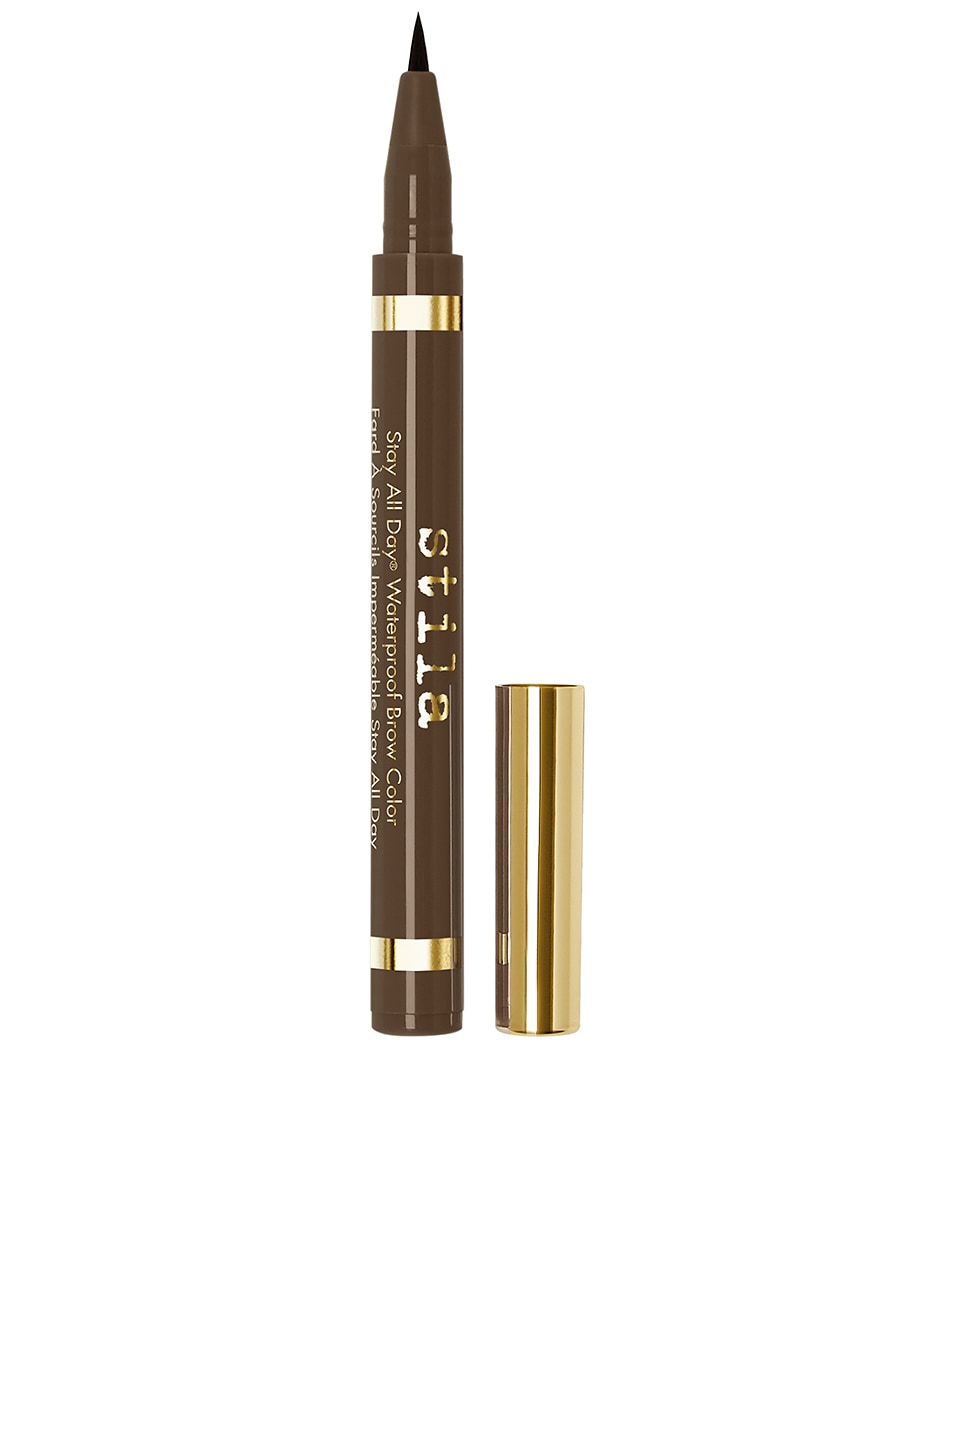 Stila Stay All Day Waterproof Brow Color in Dark